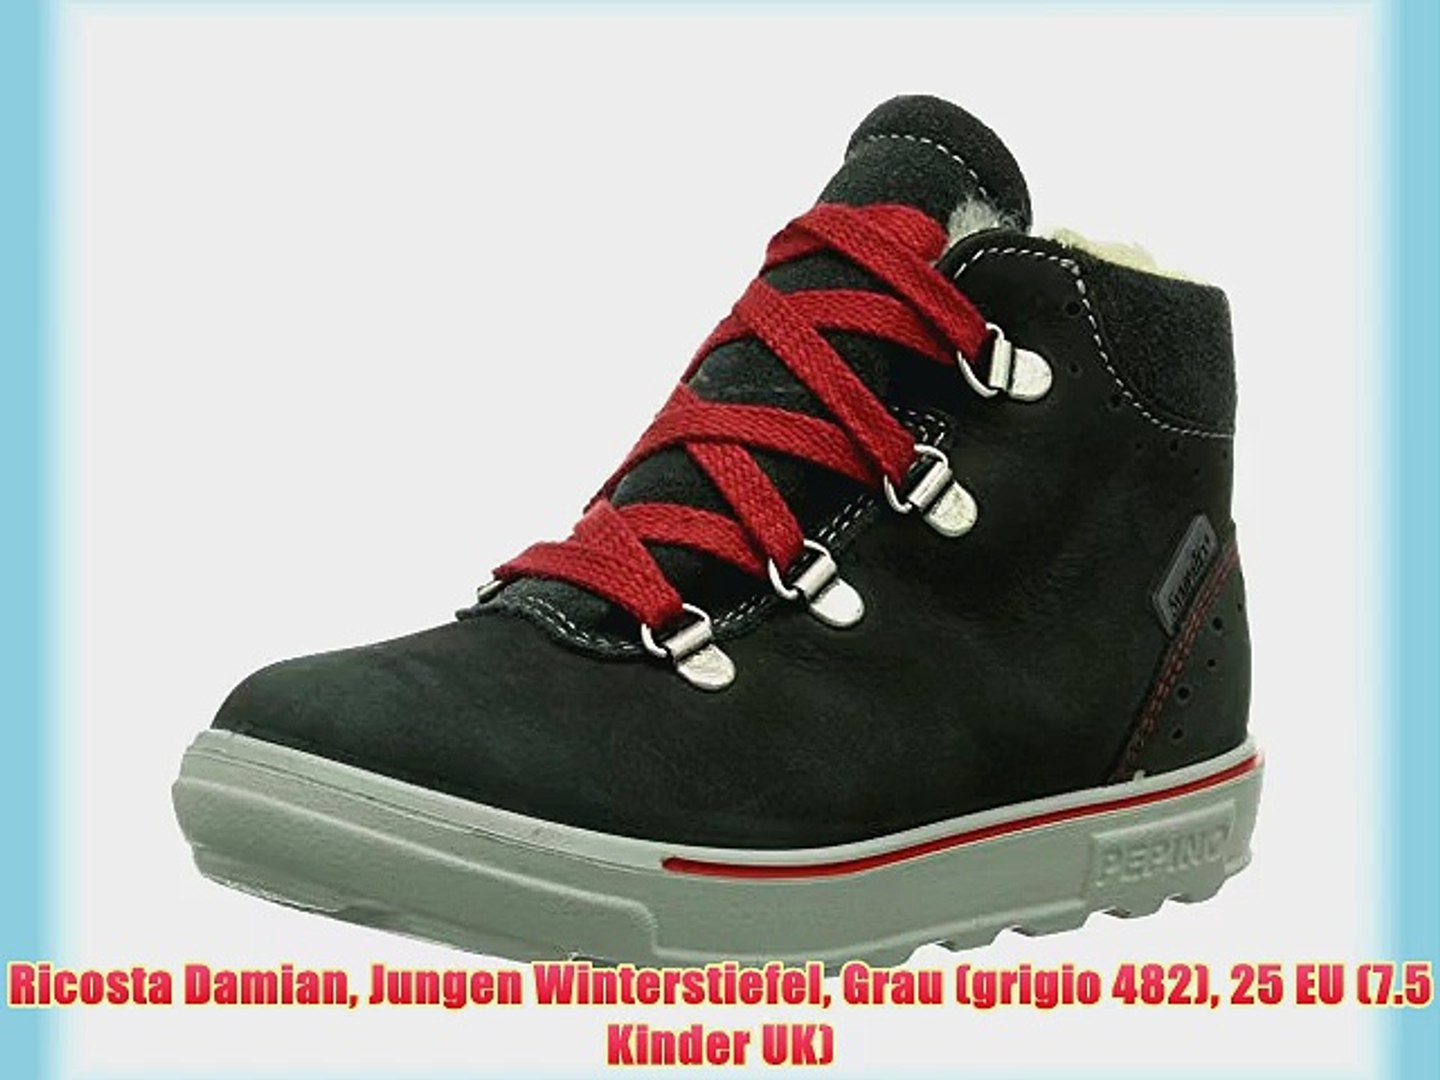 check out 23c52 6685f Ricosta Damian Jungen Winterstiefel Grau (grigio 482) 25 EU (7.5 Kinder UK)